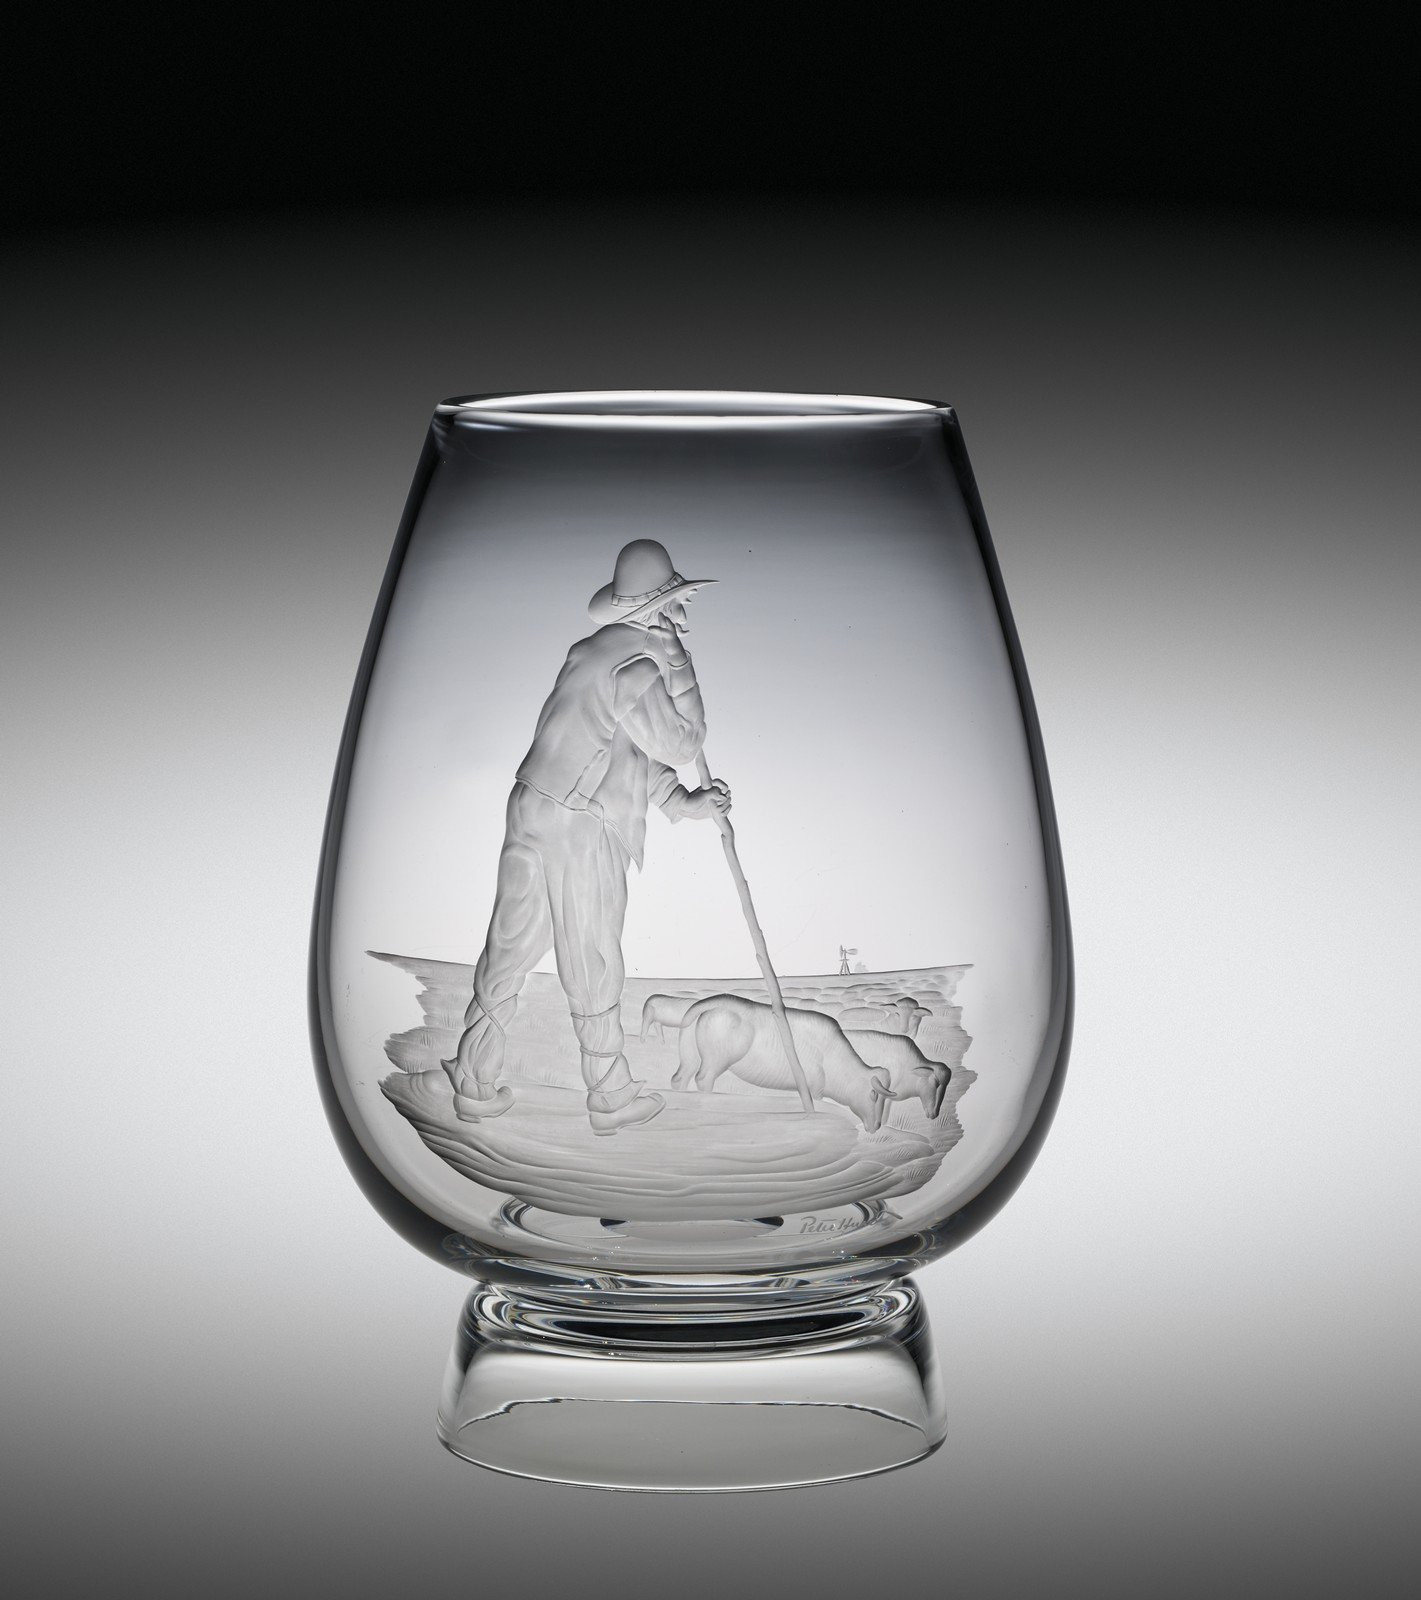 modern art glass vase of collection search corning museum of glass with regard to vase with rancher tending cattle